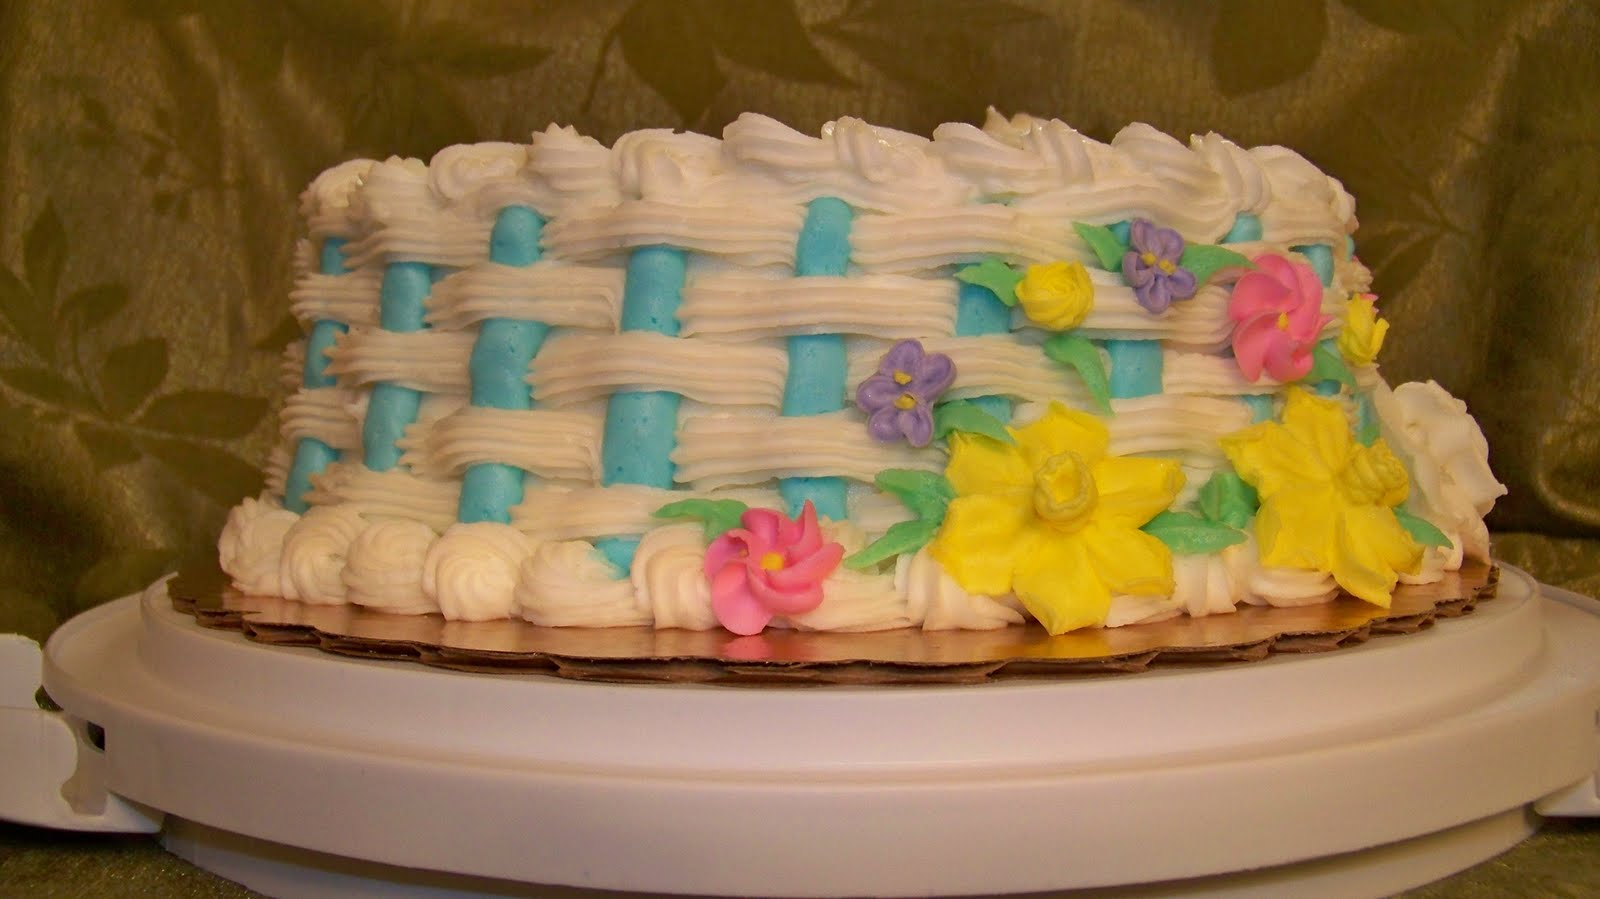 Cake Decorating Pueblo Co : My Cake by Tori: Heart Flower Basket